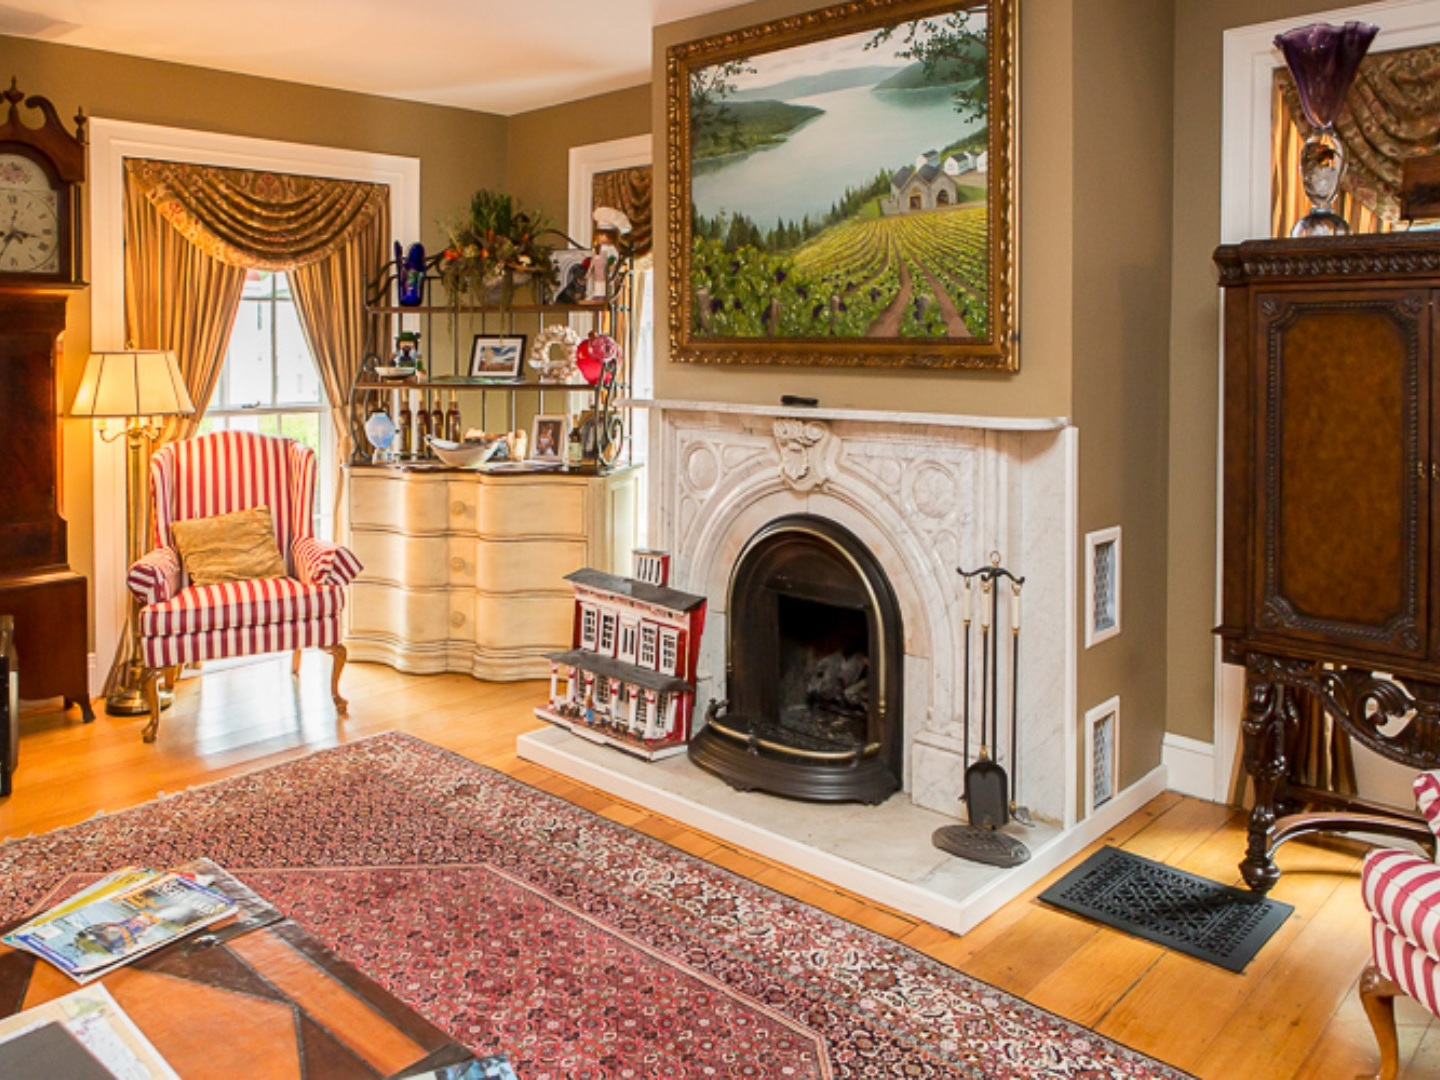 A living room filled with furniture and a fire place at Monier Manor.